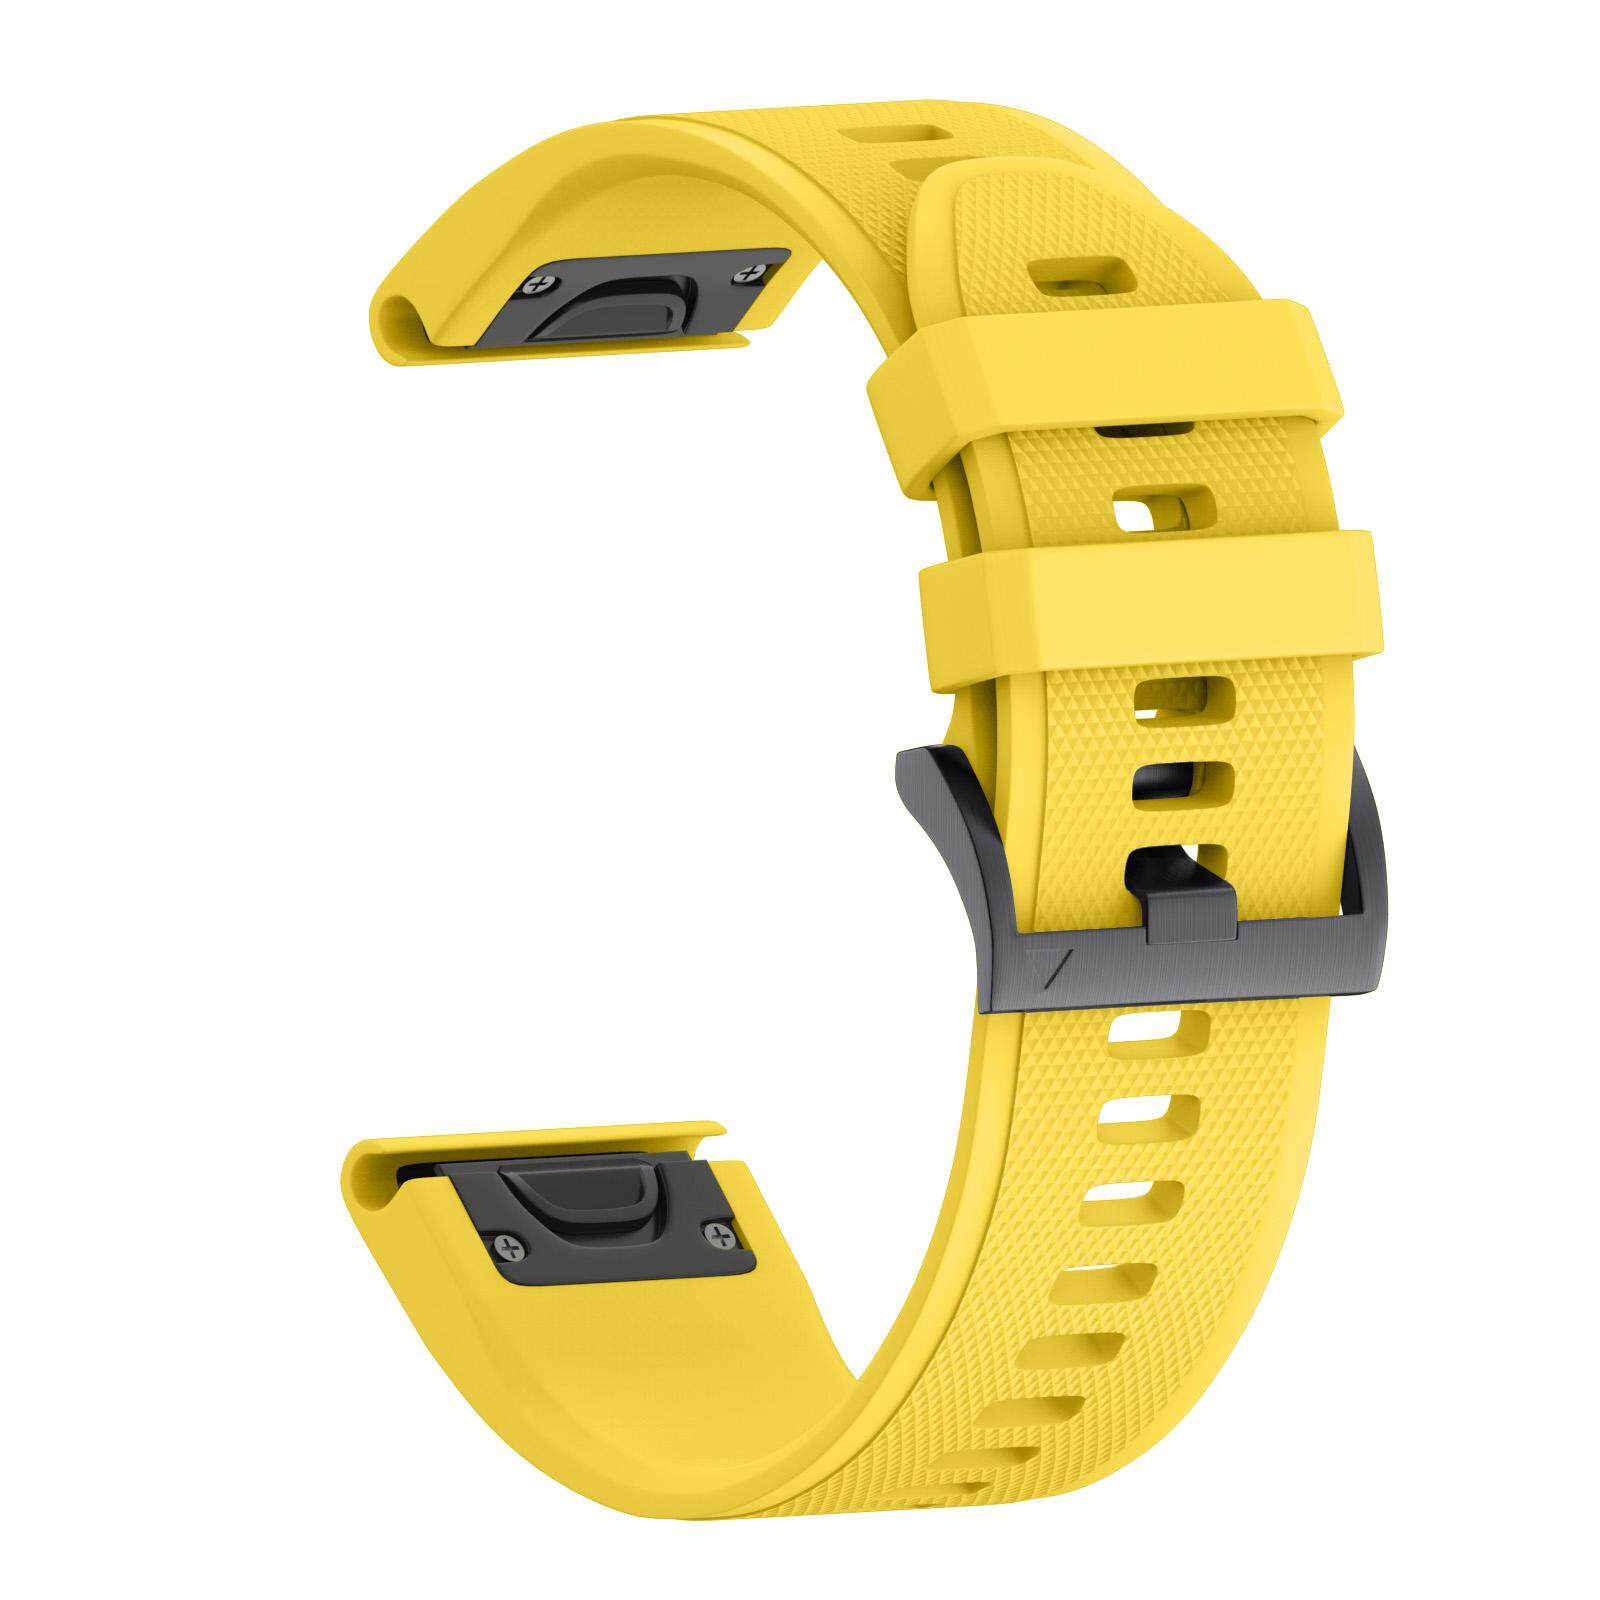 22MM Easy Fit Replacement Silicone Soft Quick Release Kit Band Strap For Garmin Fenix 5 / Forerunner 935 GPS Sport Watch – Yellow Malaysia